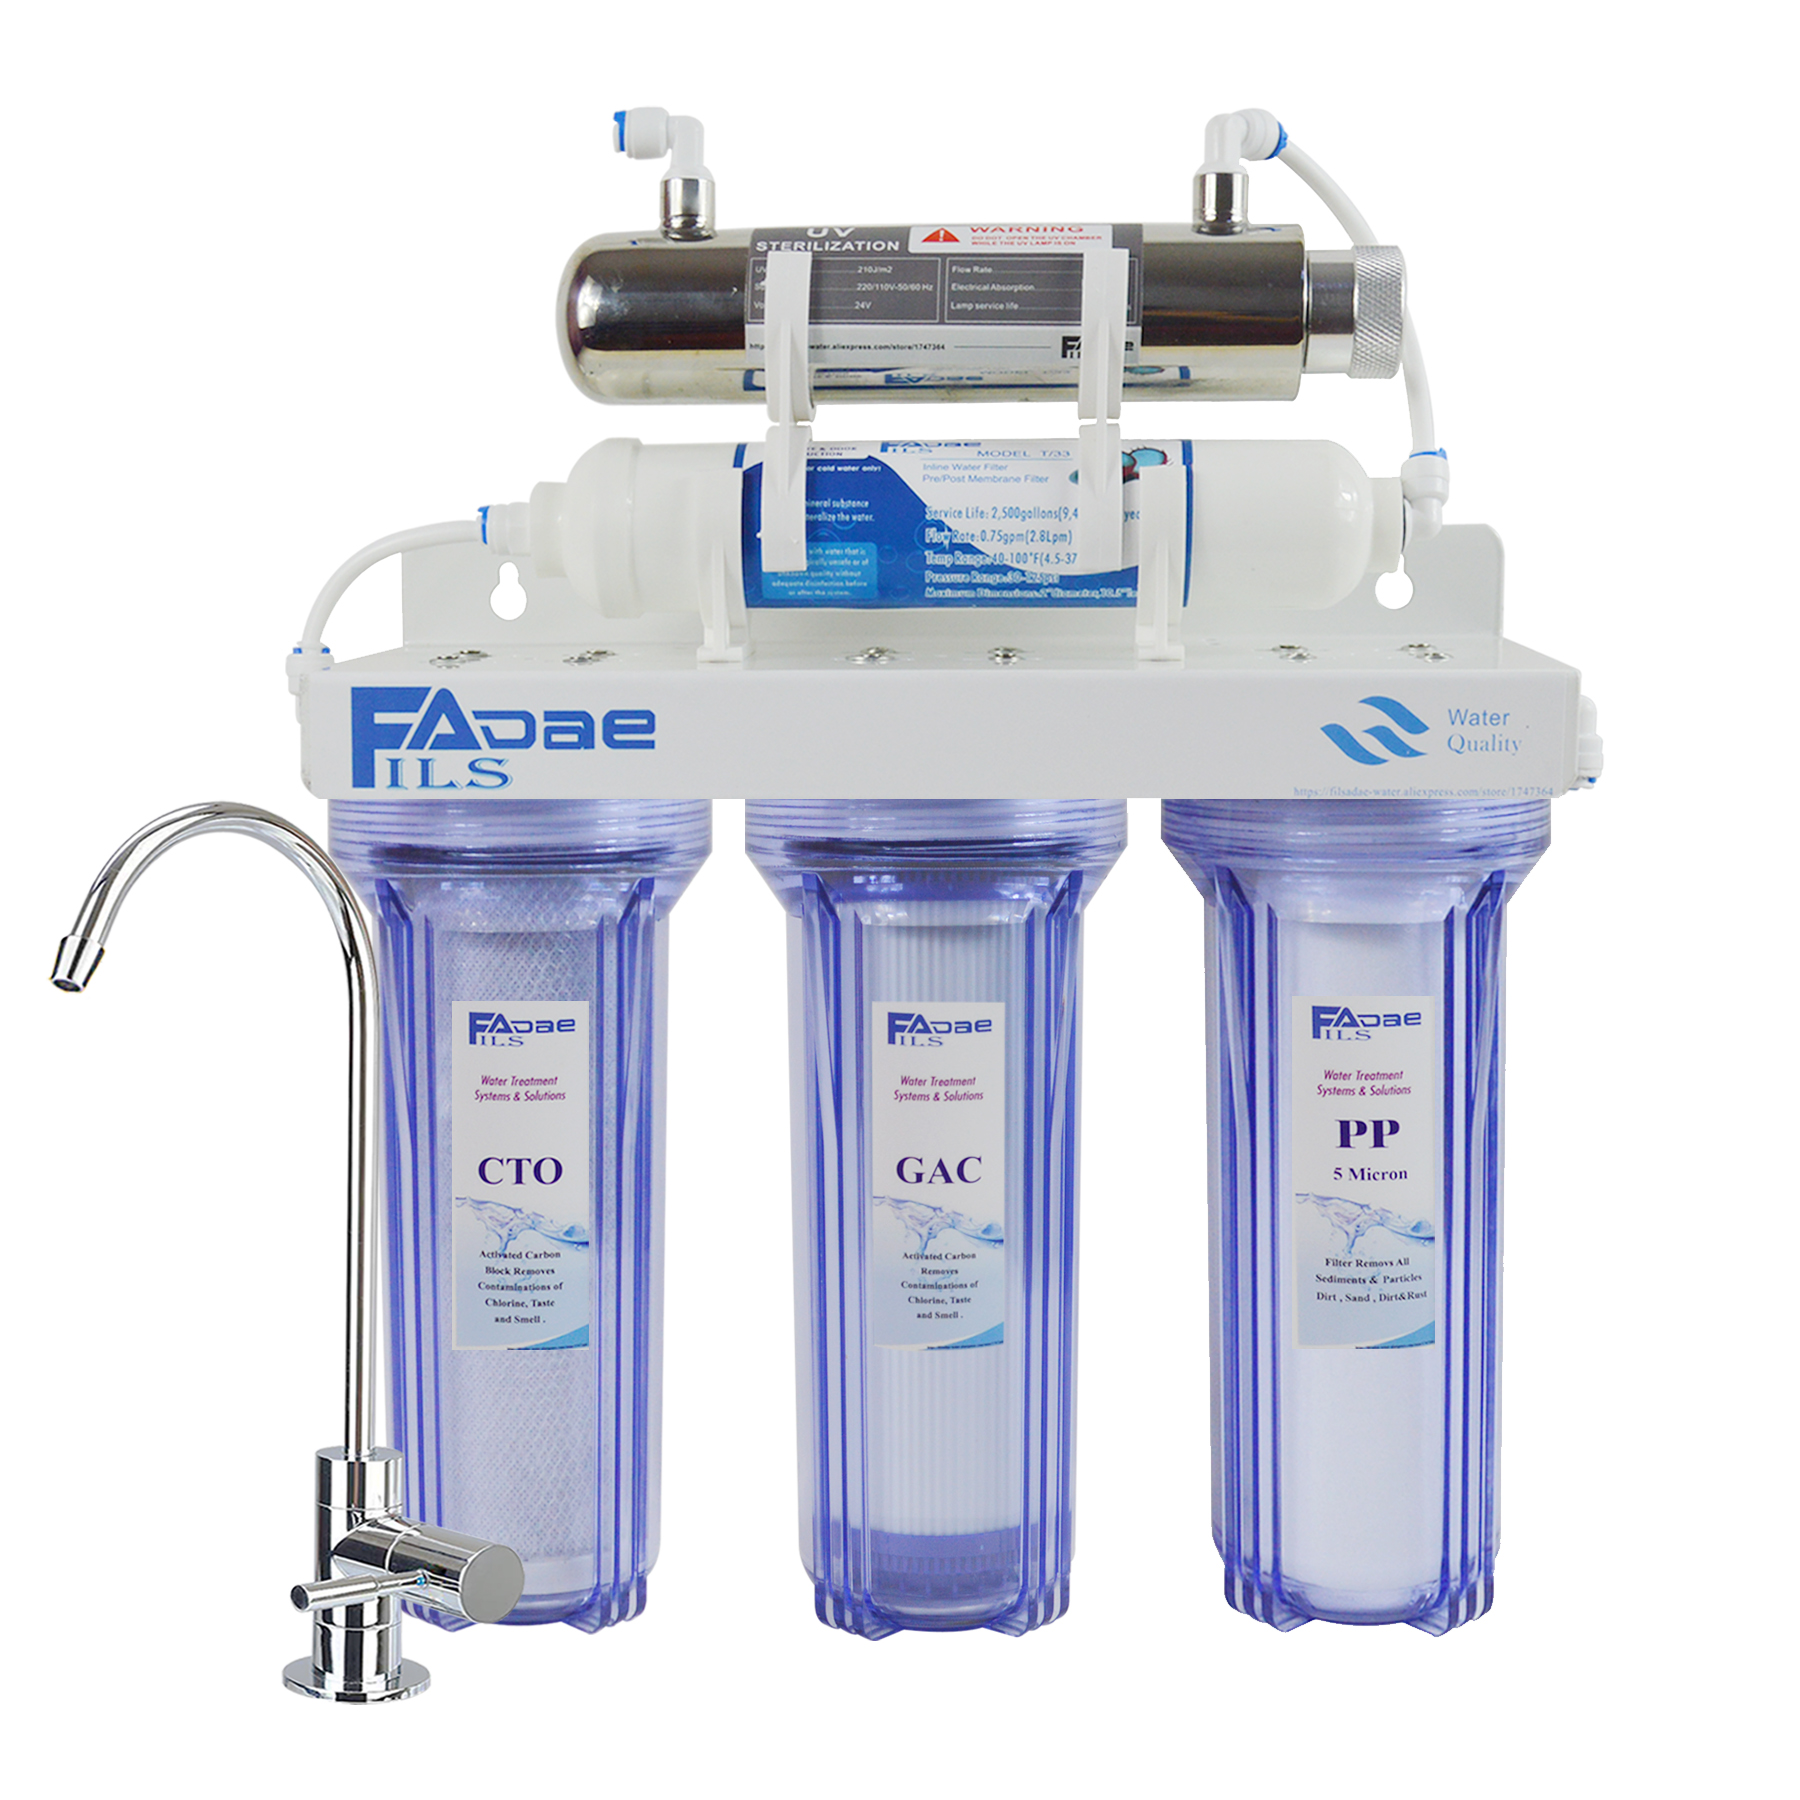 Premium Quality!5-Stage Ultraviolet Drinking Water Filter UV Sterilizer Purifier For Impurities,Bad Taste,Odor&Harmful Bacteria